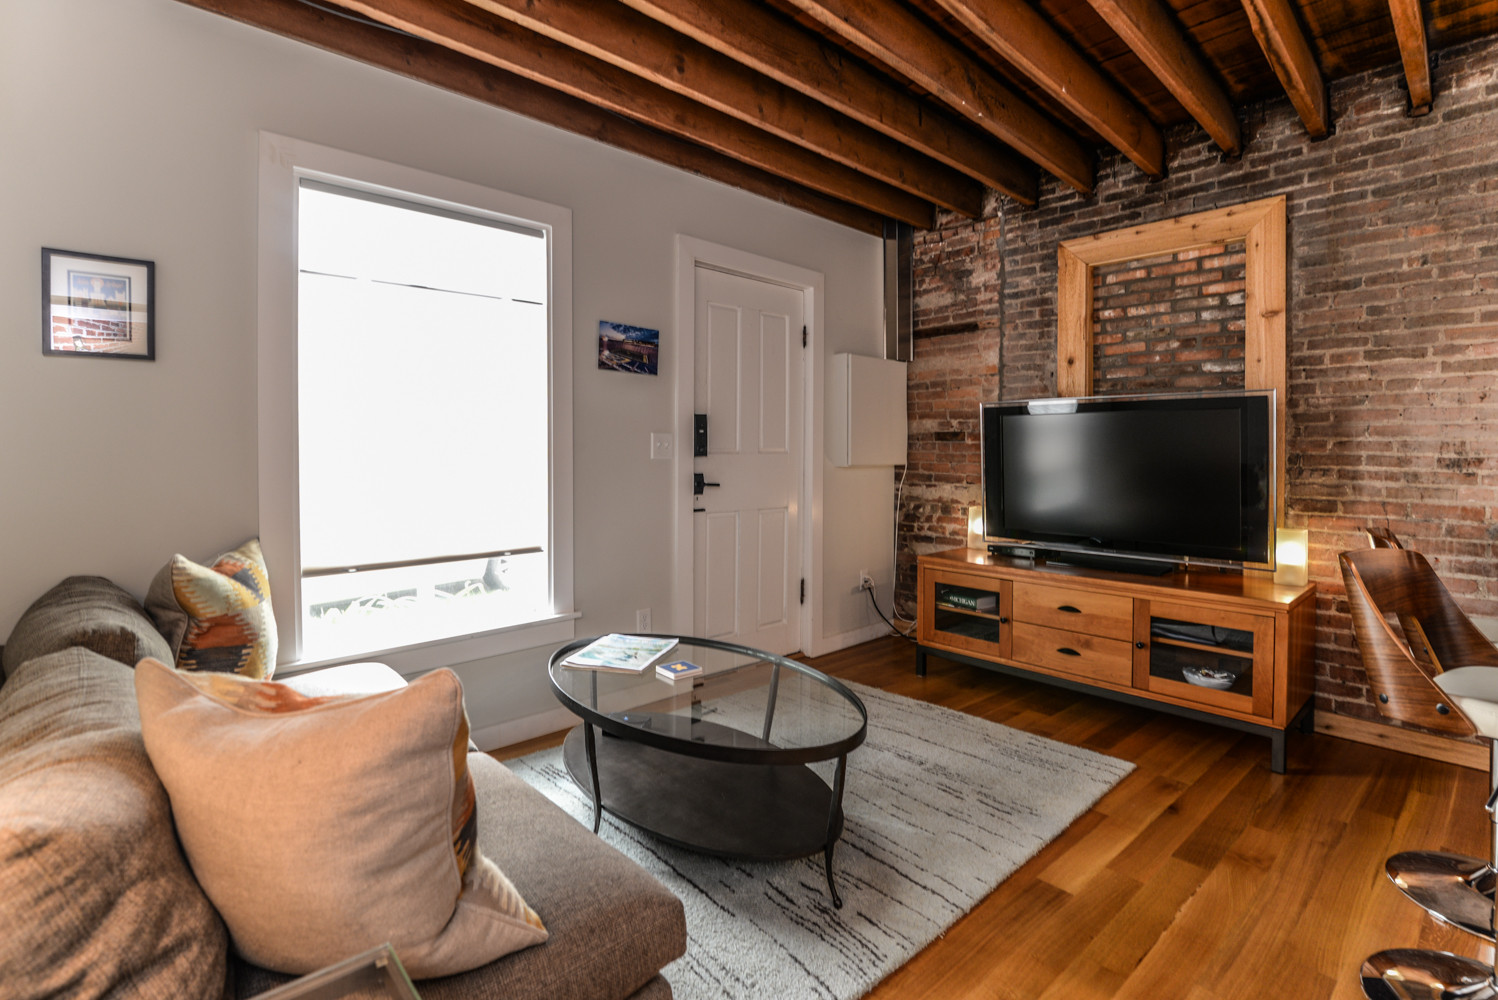 The exposed wood beams and brick give instant warmth to the carriage house loft. Reclaimed wood floors with a natural clear coat finish provide just enough color to the neutral palette of furniture an